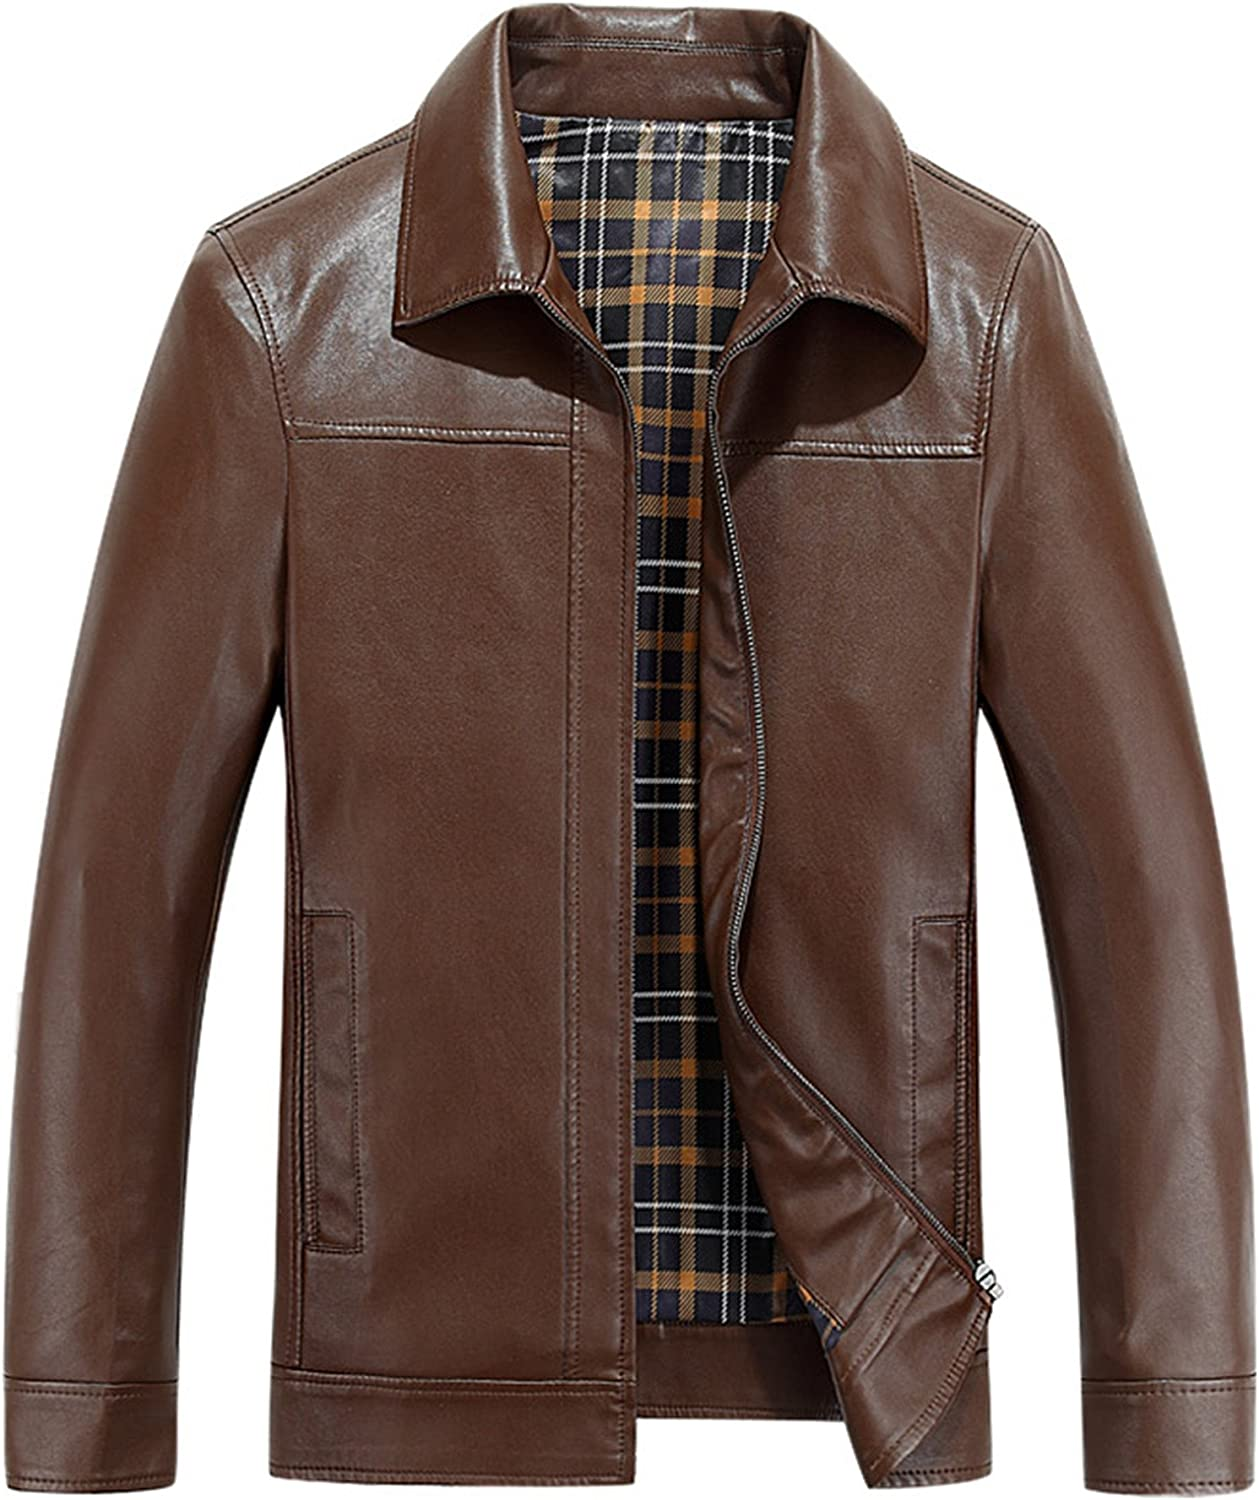 PENER Spring and autumn mens business casual leather jacket